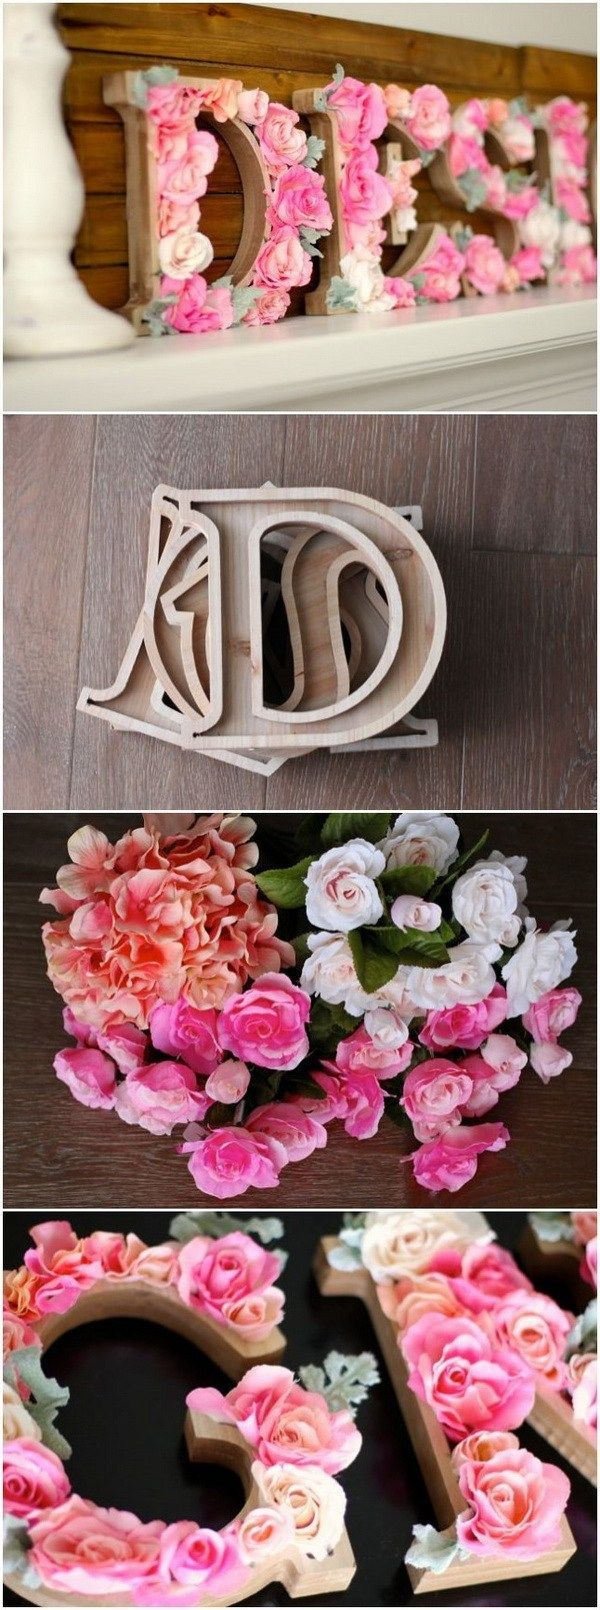 Wedding decoration ideas for bedroom  DIY Rustic Letters With Flowers A wood sign with flowers that says